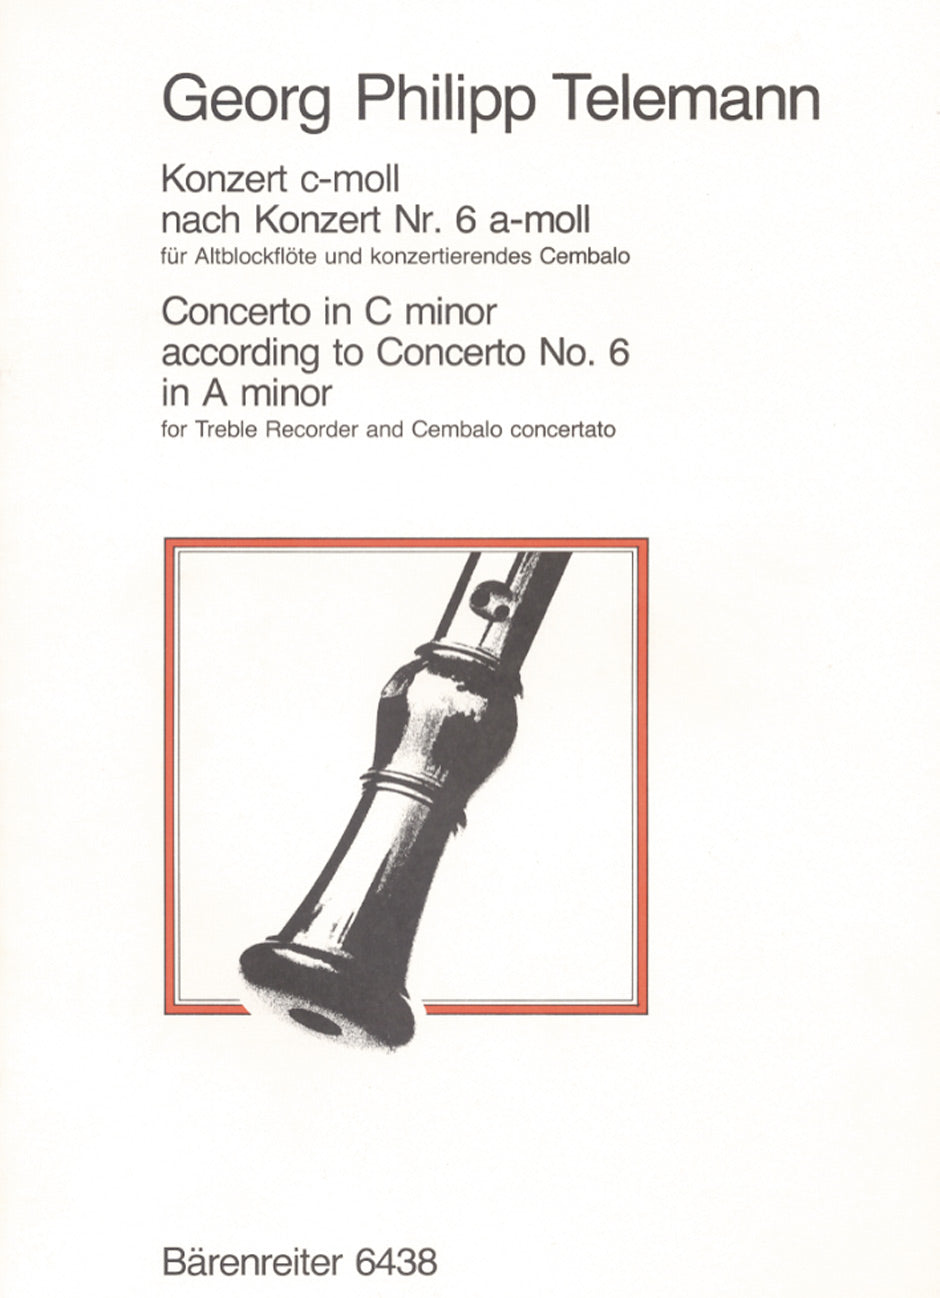 Telemann: Recorder Concerto in C Minor, TWV 42:a2